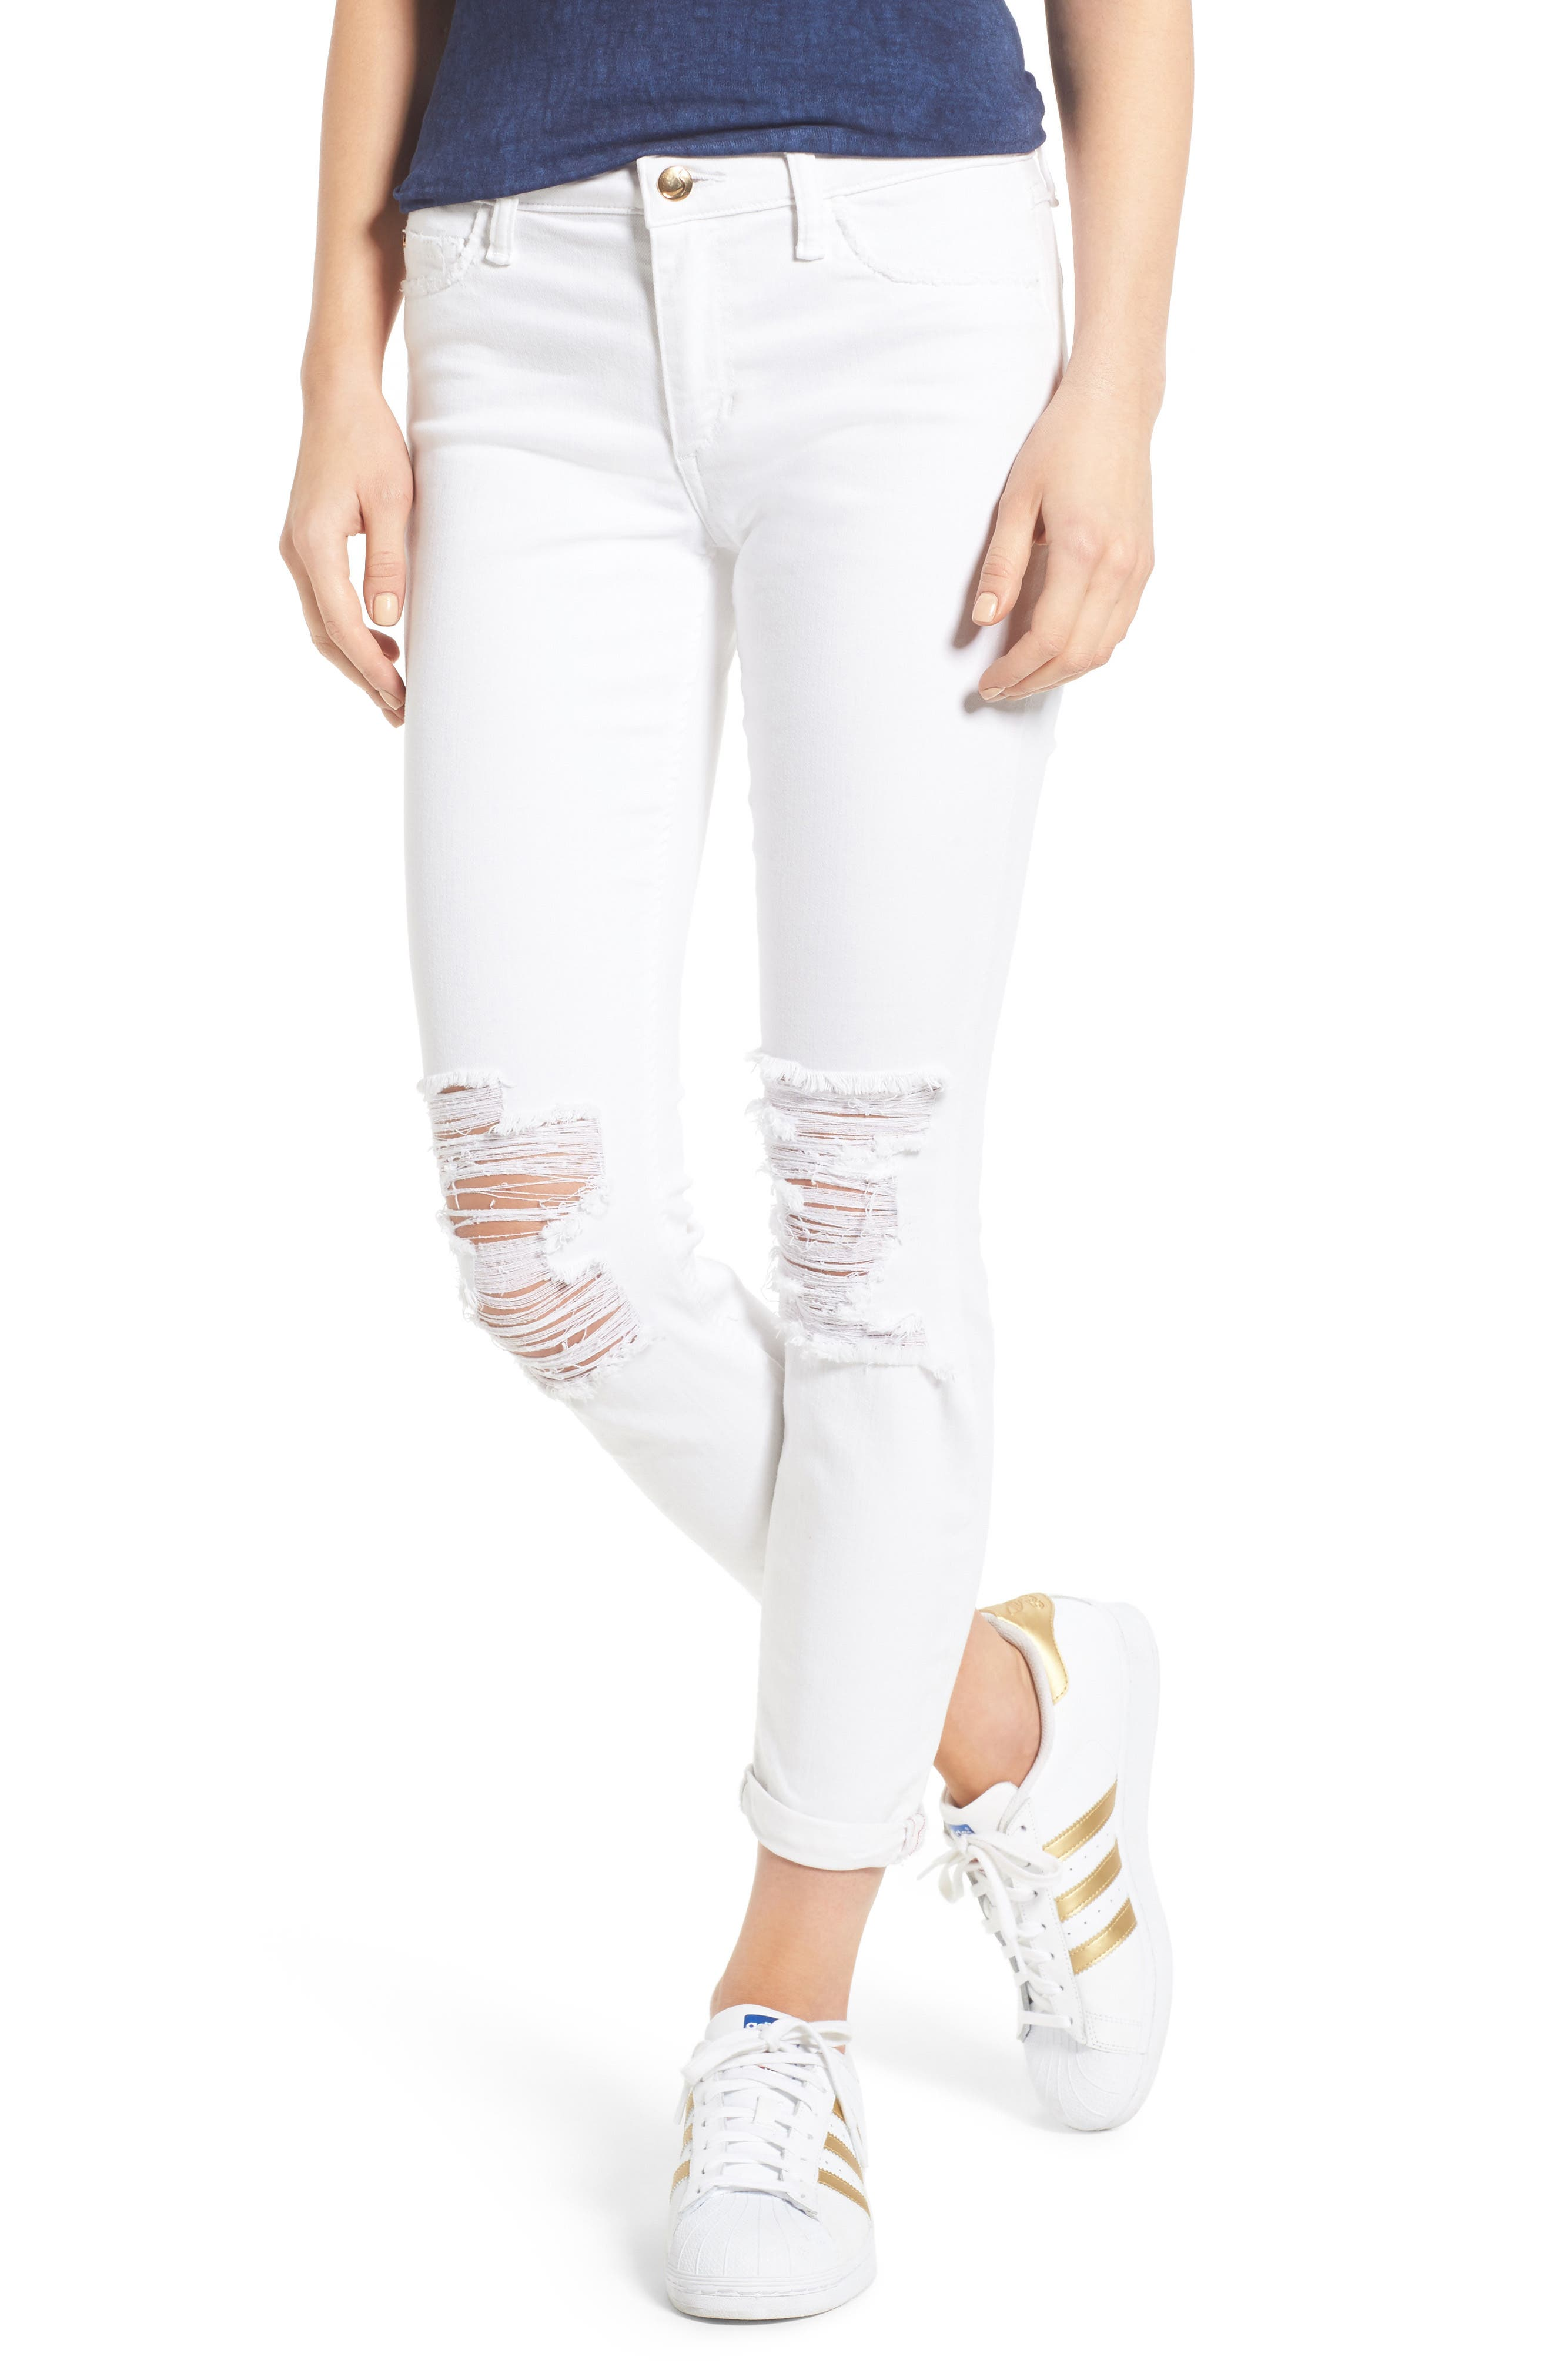 Andie Crop Skinny Jeans,                             Main thumbnail 1, color,                             Scottie